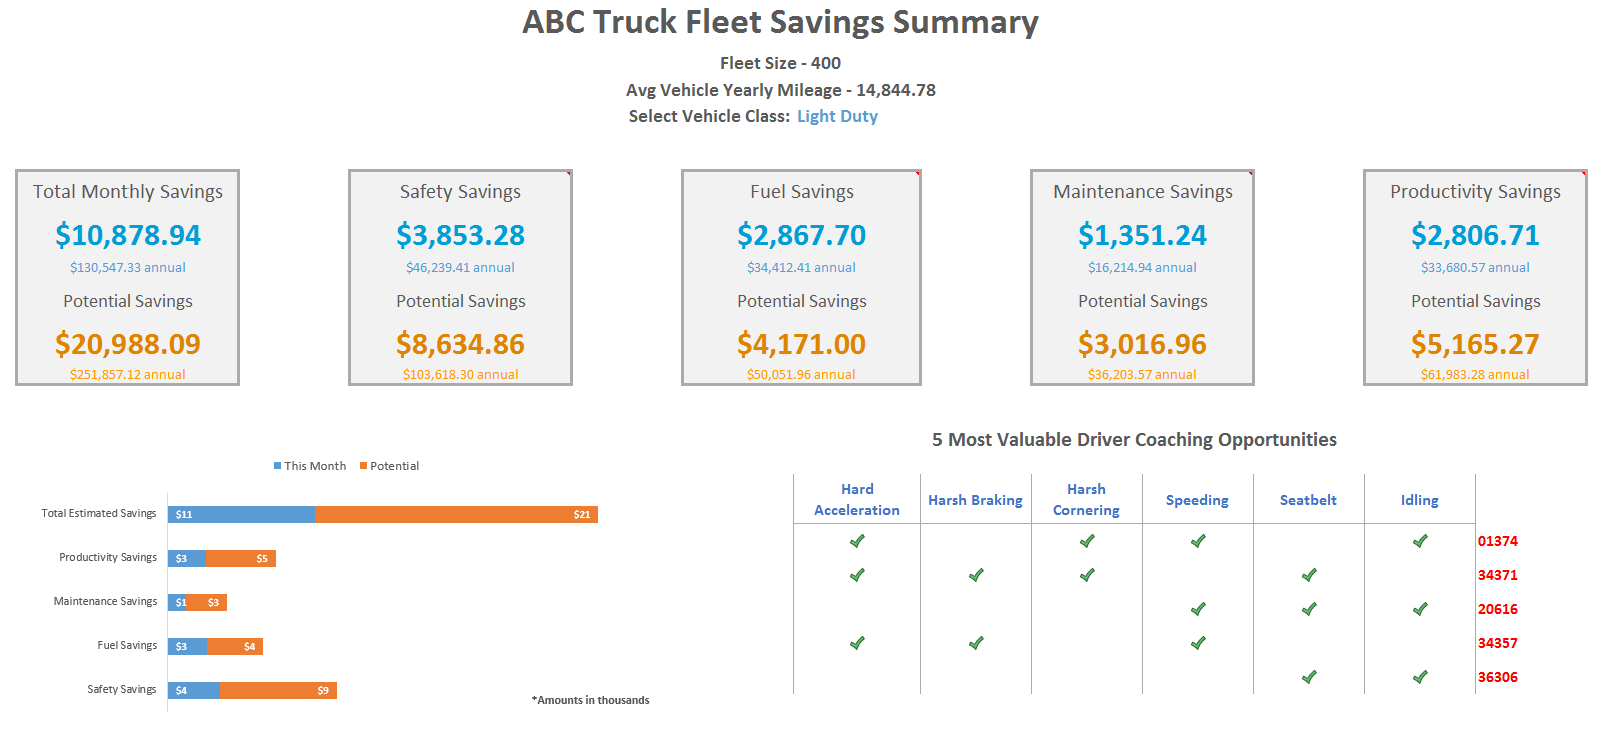 fleet savings summary